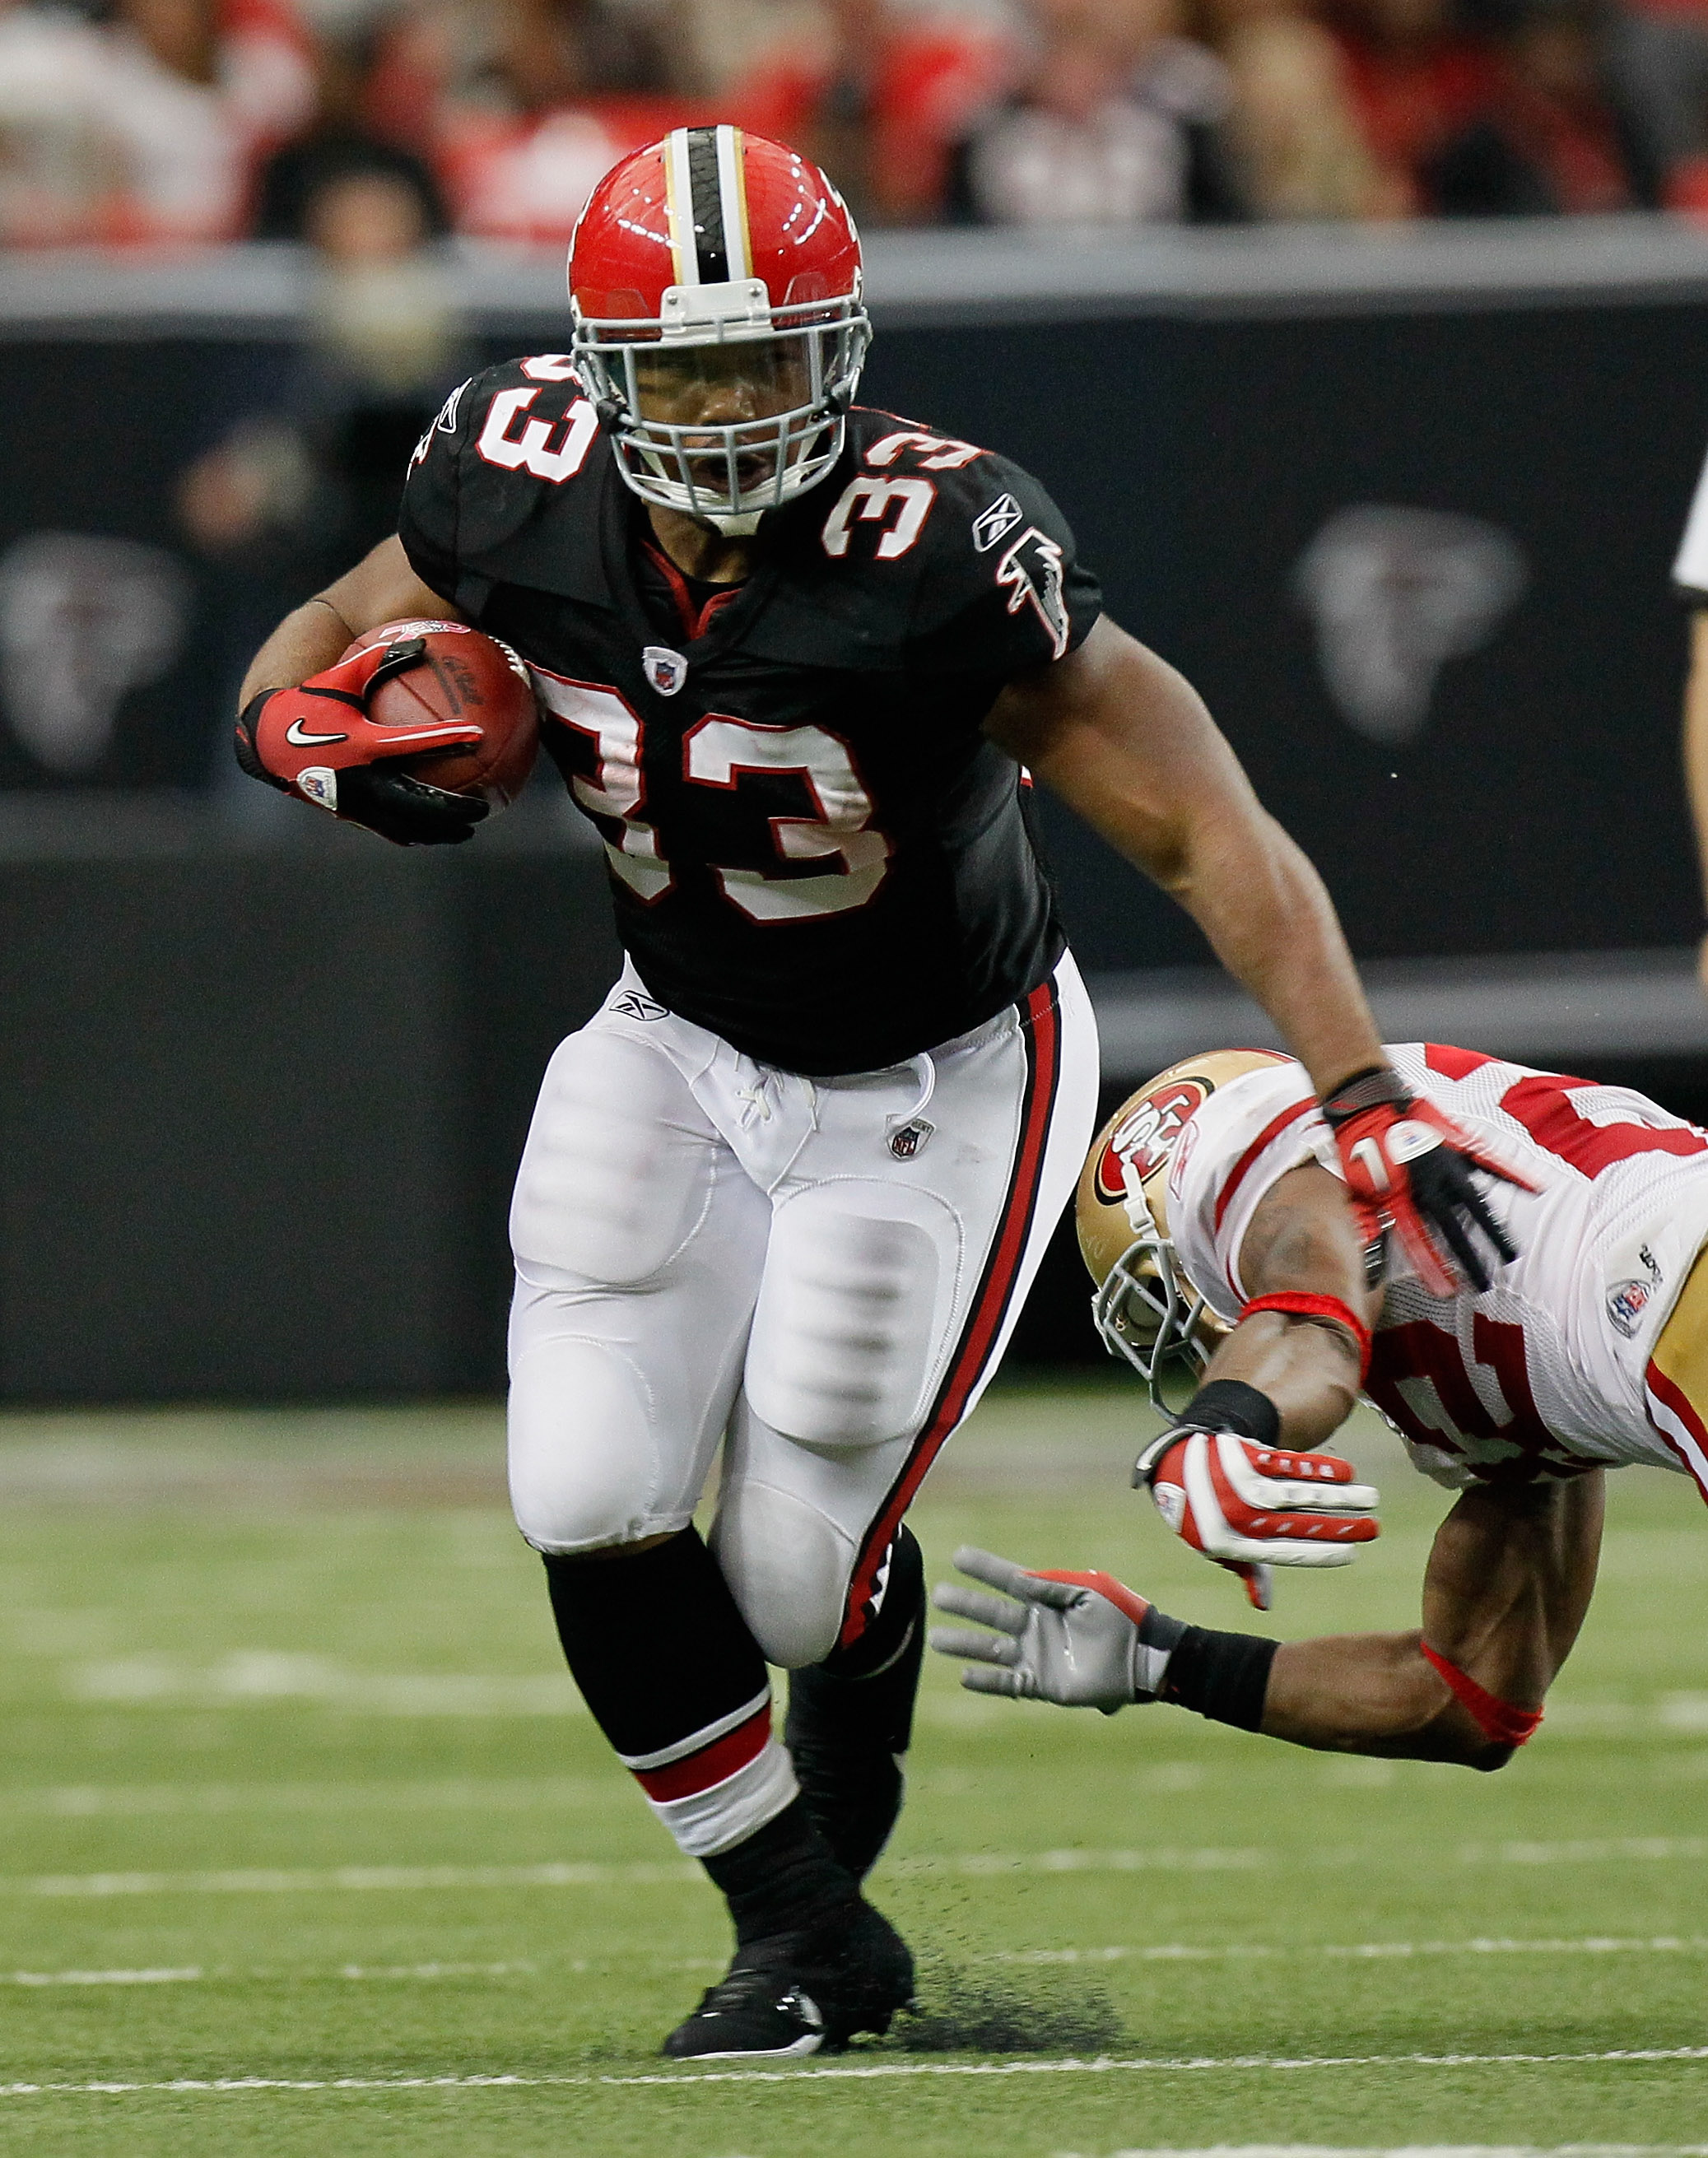 ATLANTA - OCTOBER 03:  Michael Turner #33 of the Atlanta Falcons against the San Francisco 49ers at Georgia Dome on October 3, 2010 in Atlanta, Georgia.  (Photo by Kevin C. Cox/Getty Images)